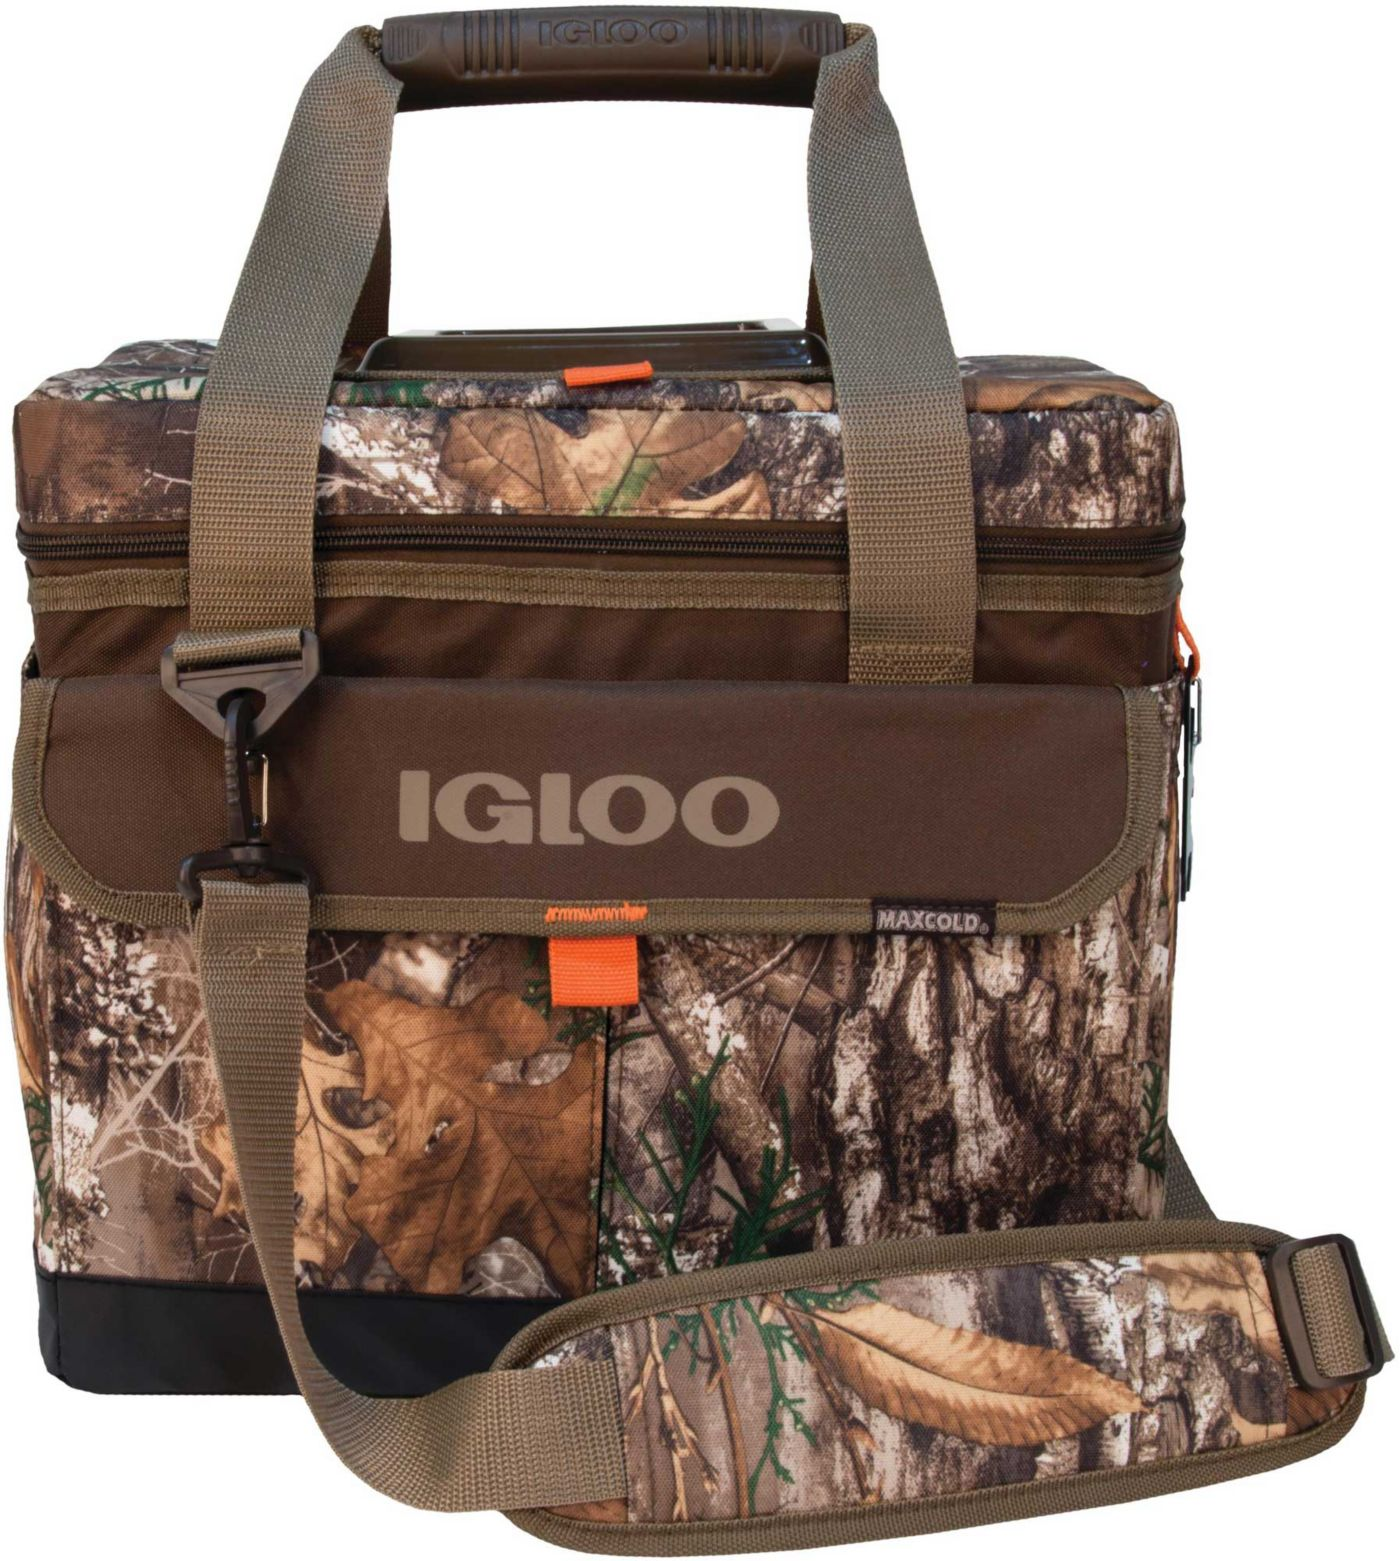 Igloo RealTree Square 30 Can Cooler Bag